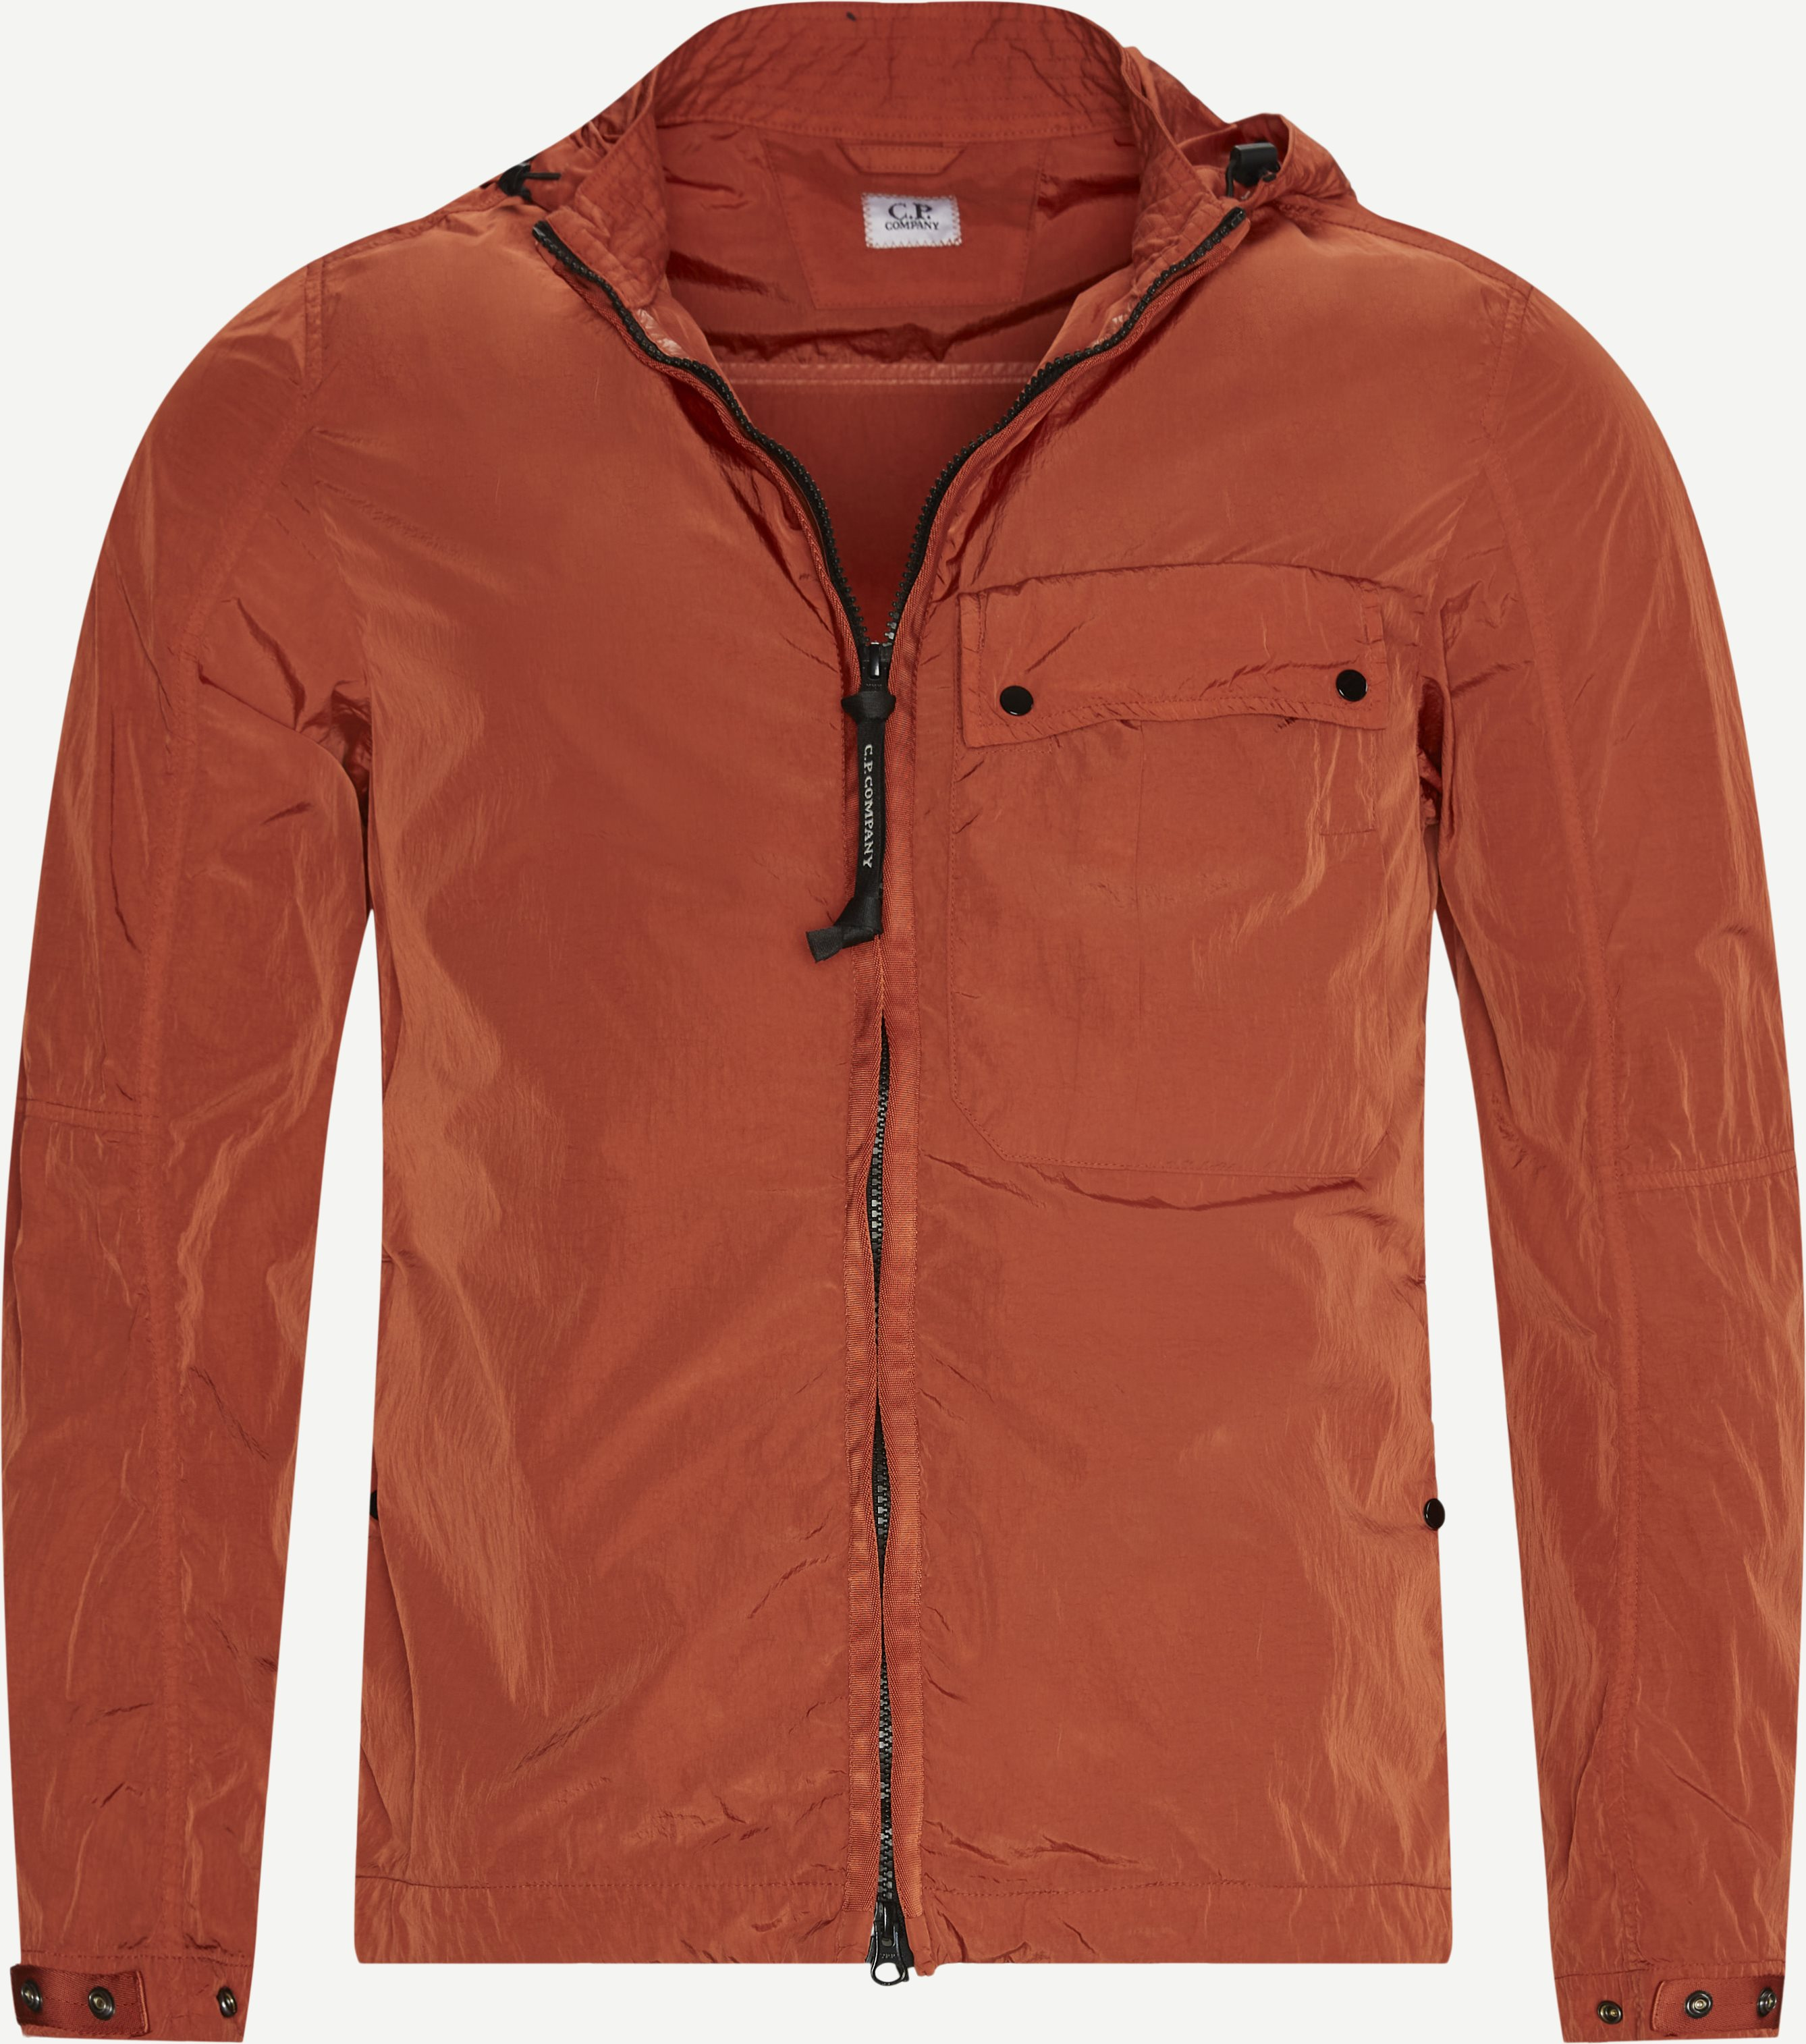 Jackets - Regular - Orange